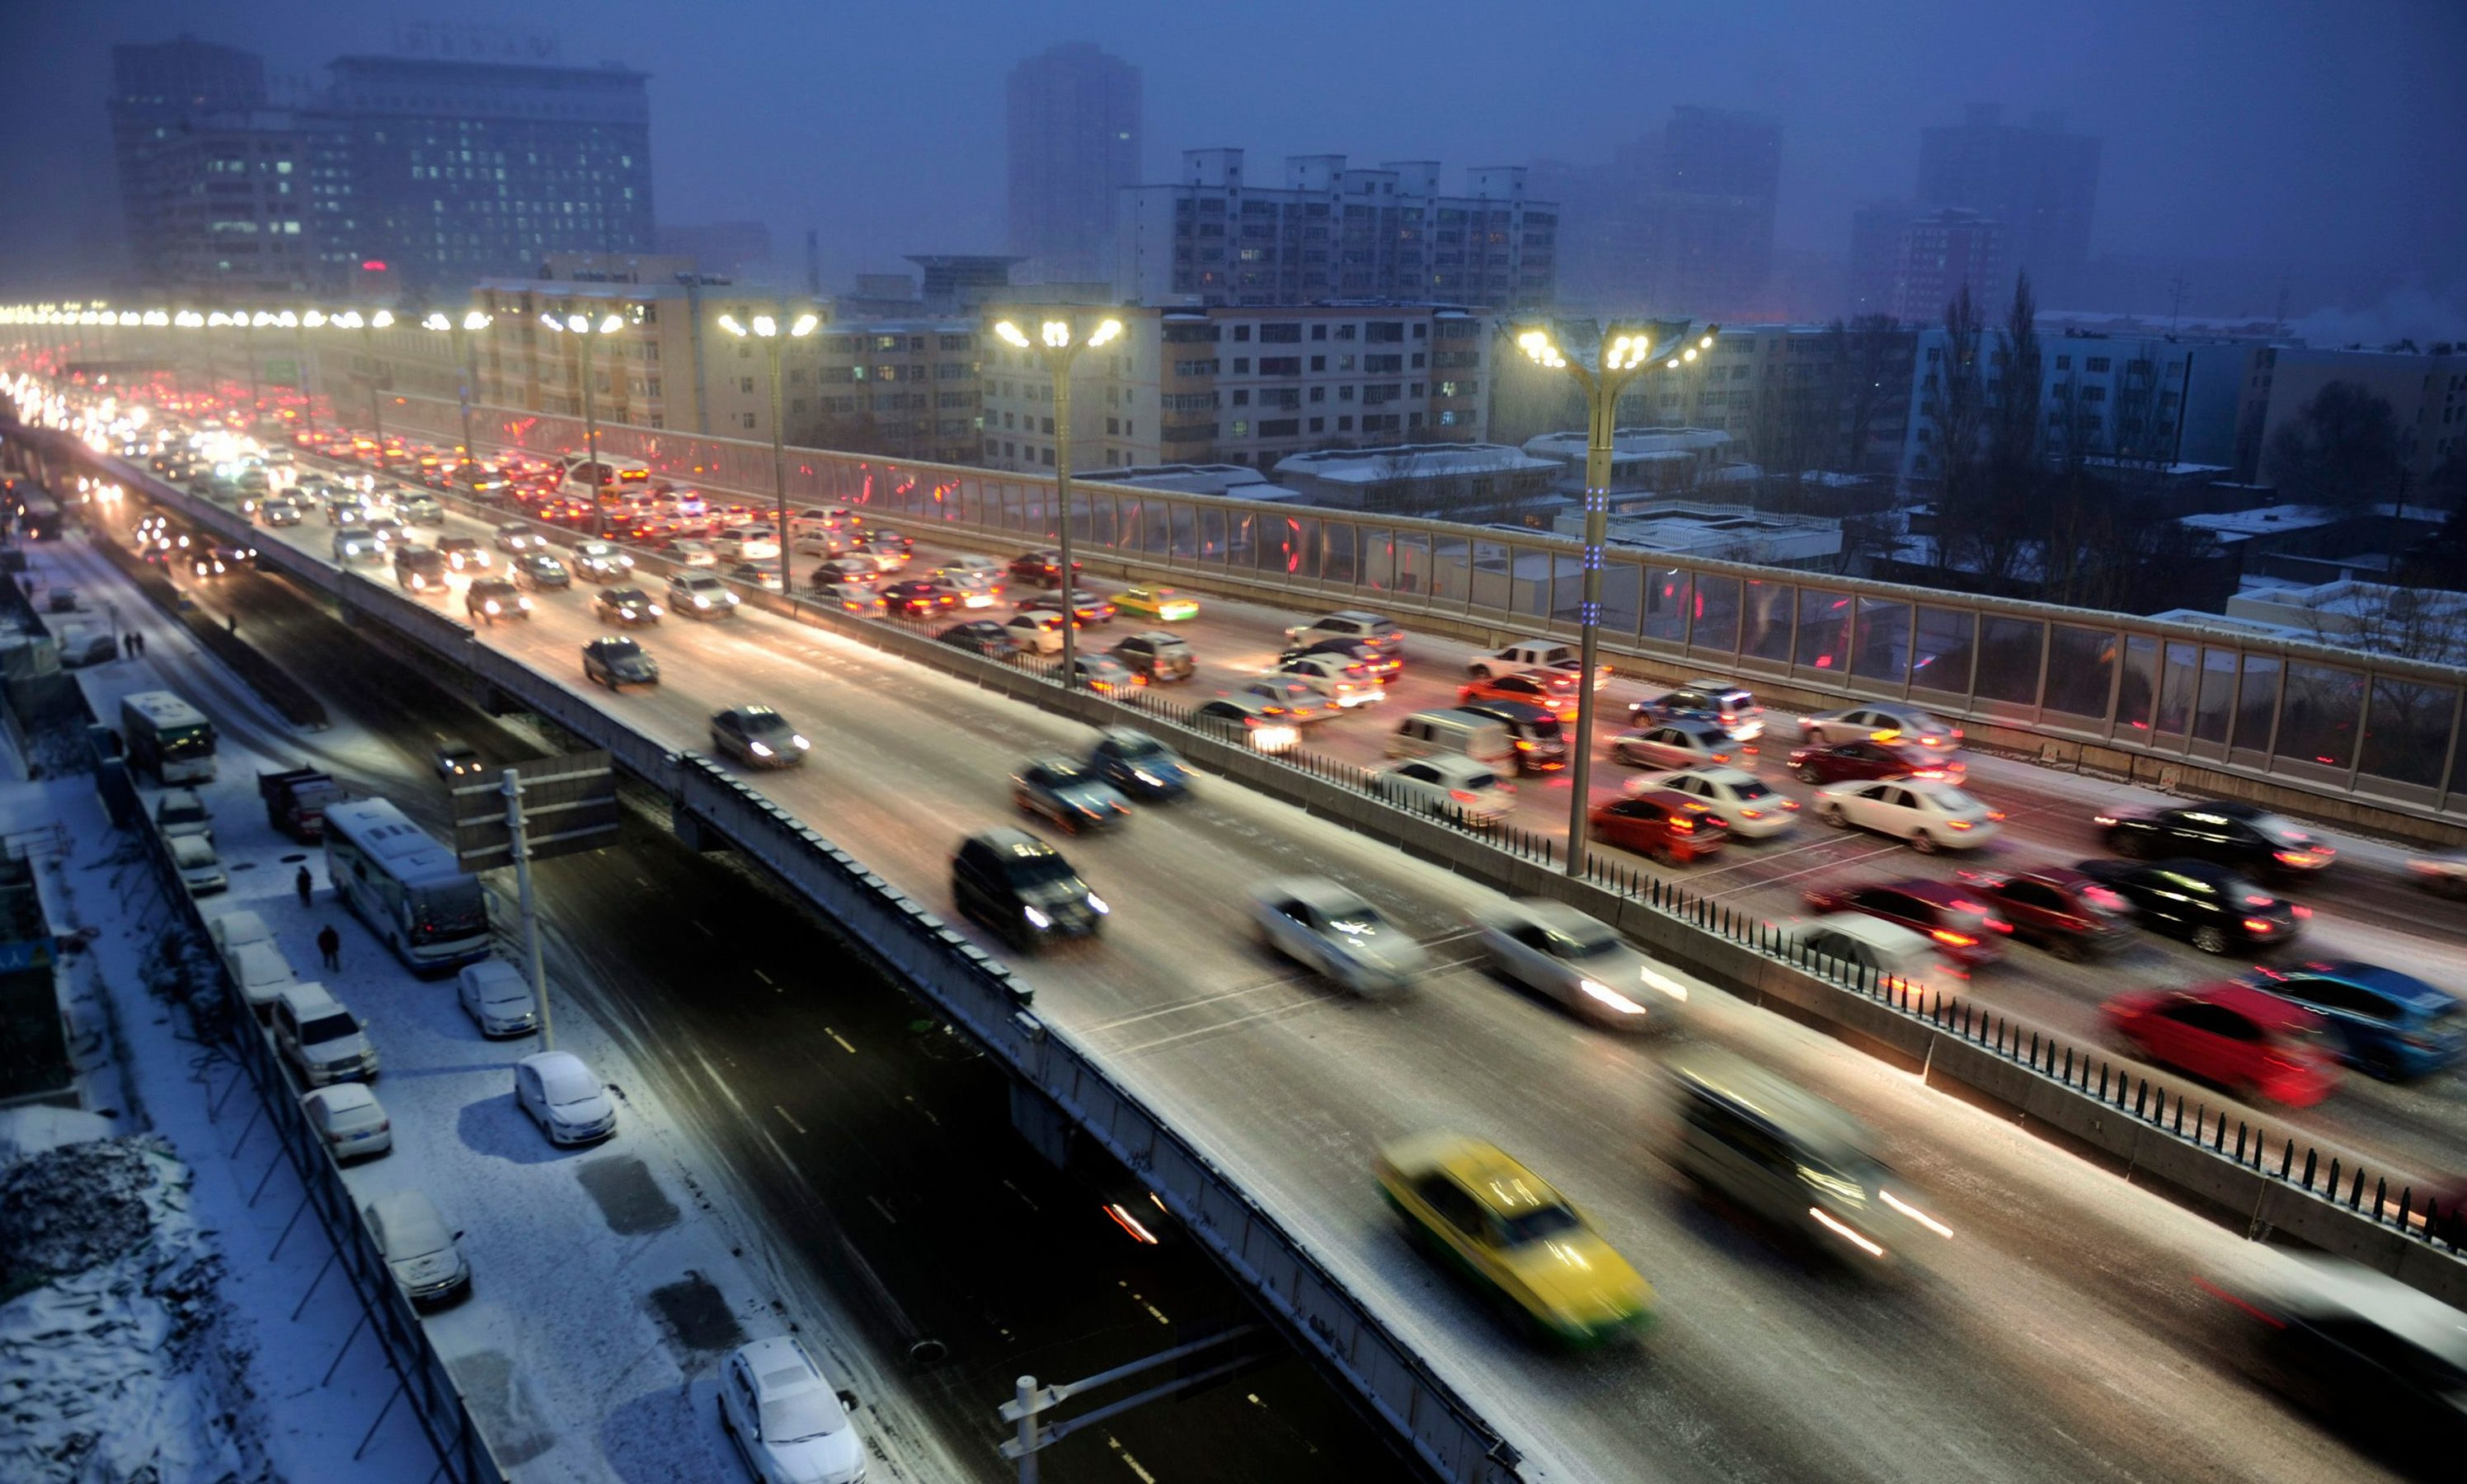 Cars drive along a bridge after snowfall in Urumqi, Xinjiang Autonomous region, November 28, 2014. Picture taken November 28, 2014. REUTERS/Stringer (CHINA - Tags: ENVIRONMENT TRANSPORT) CHINA OUT. NO COMMERCIAL OR EDITORIAL SALES IN CHINA - GM1EABT1HKC01